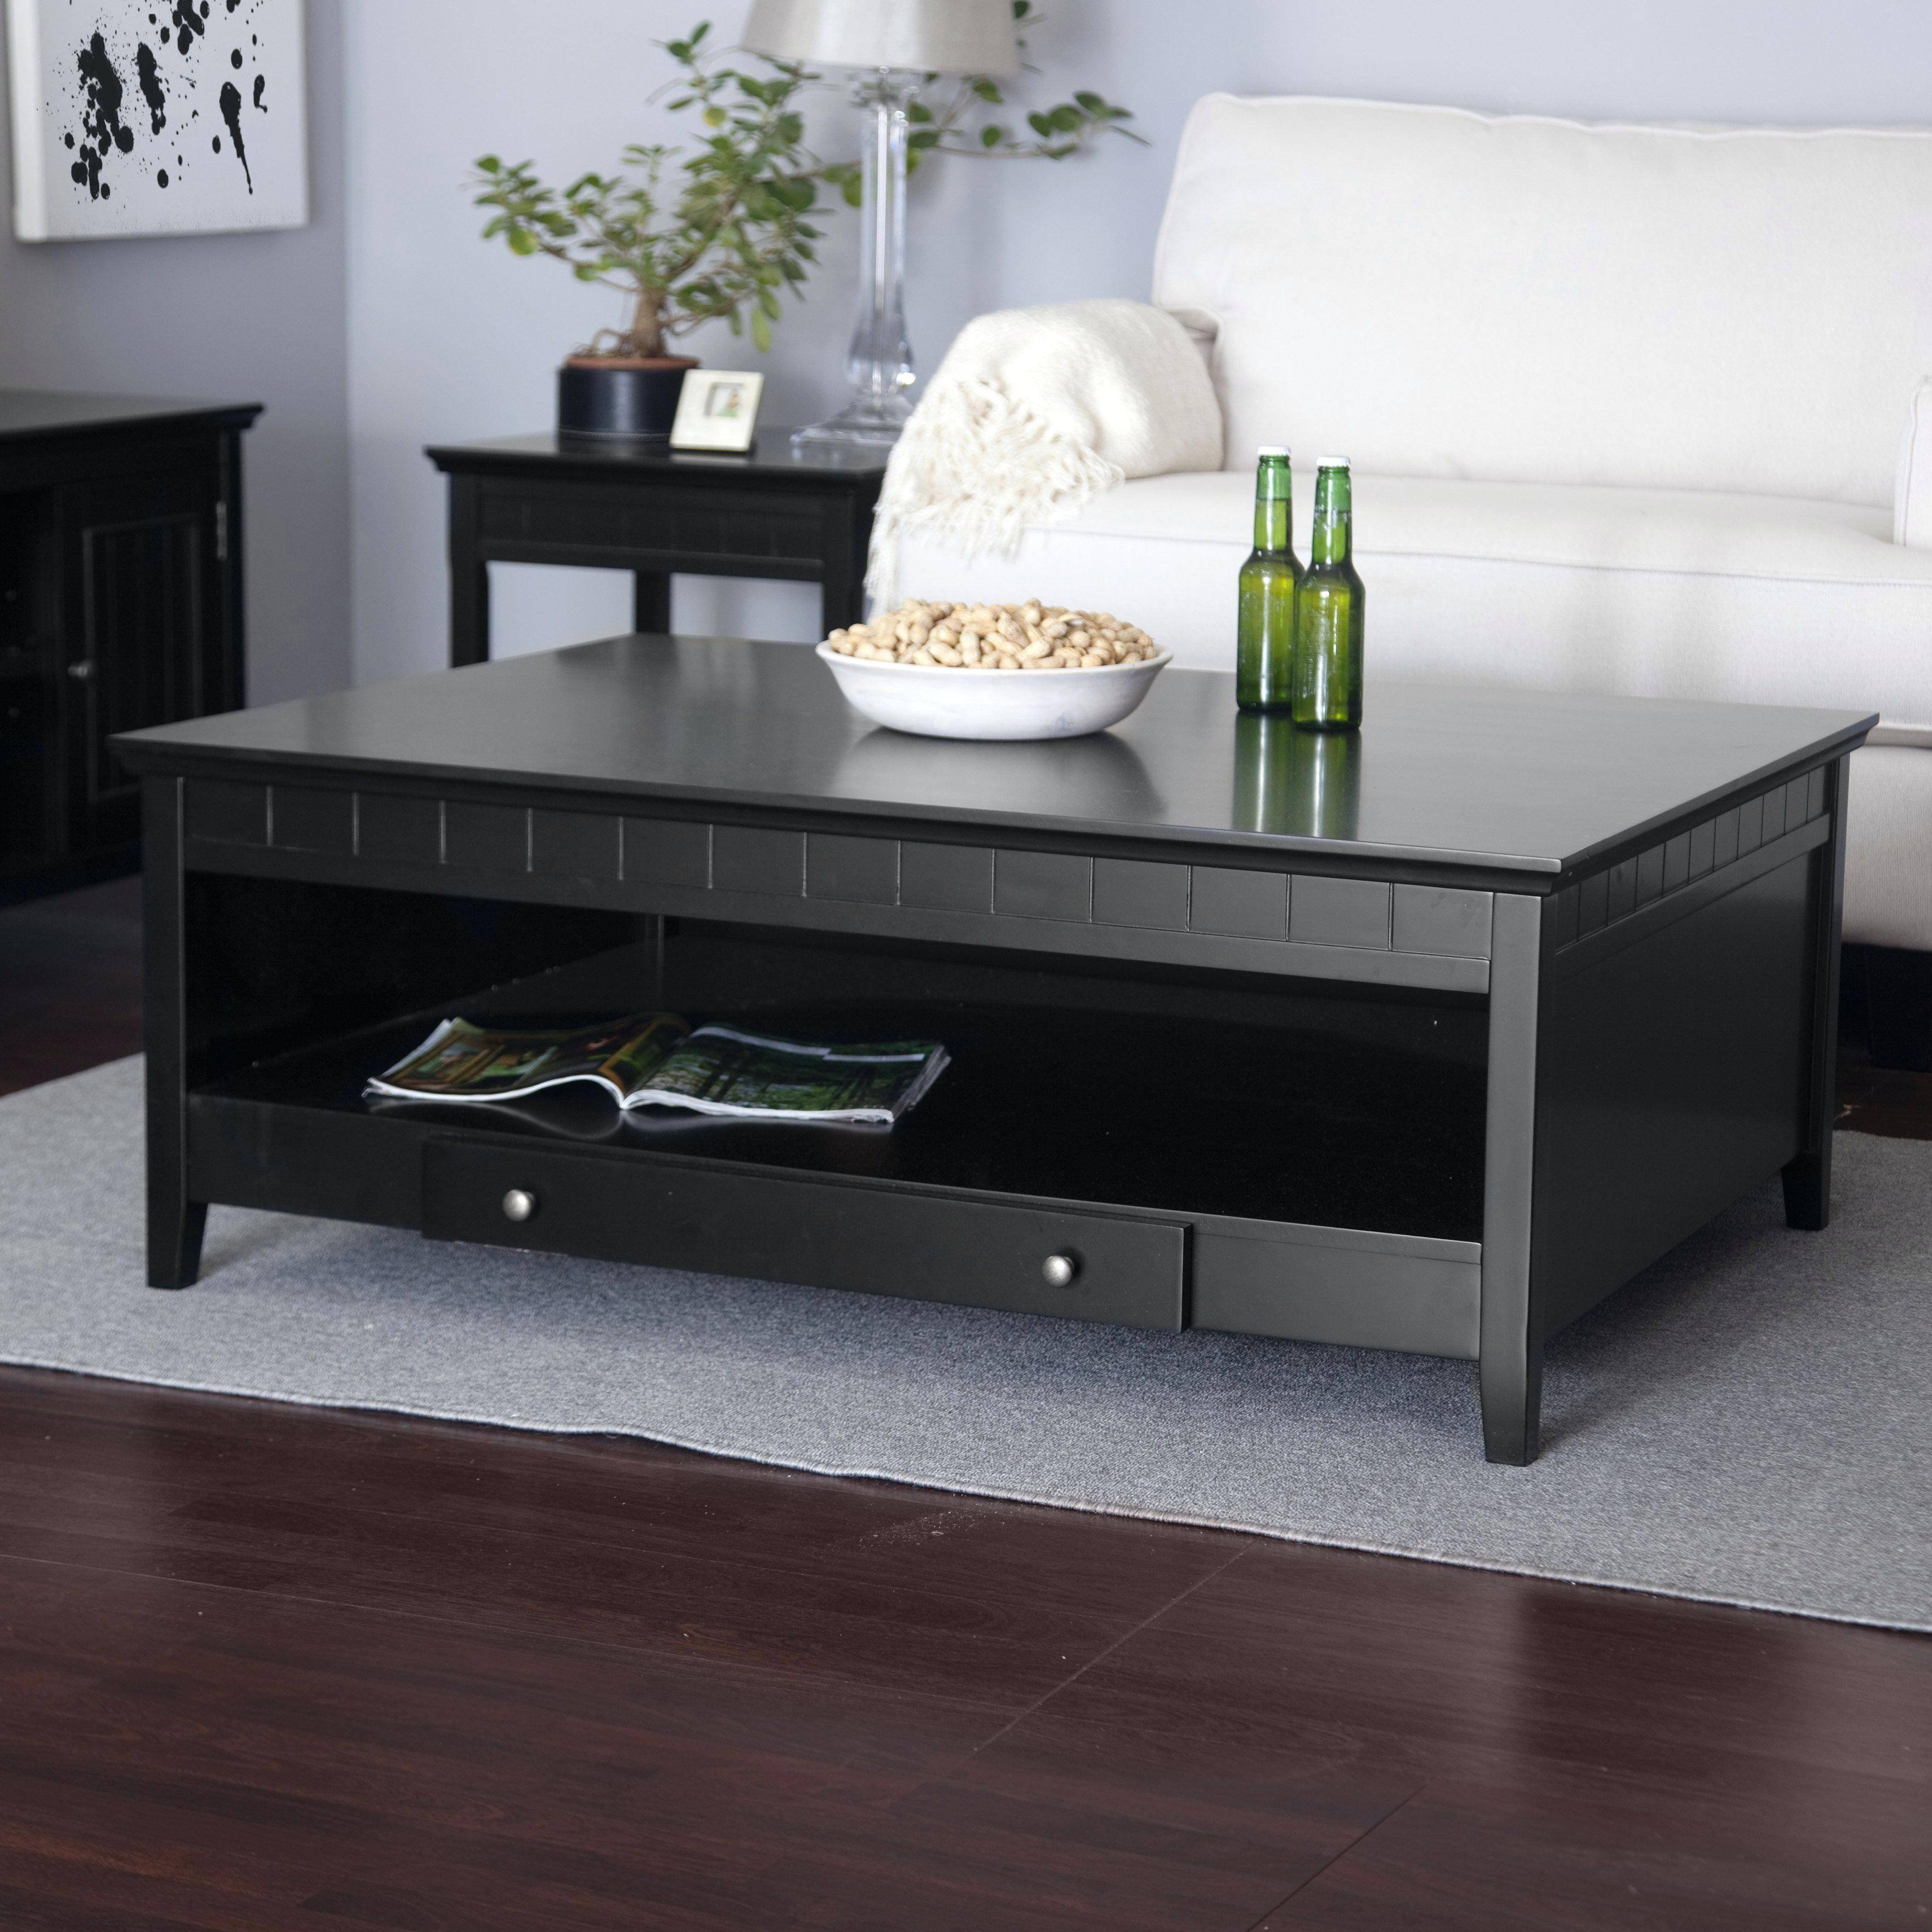 Coffee Table: Square Coffee Table Storage Large Round Coffee Inside Square Coffee Tables With Storages (View 9 of 30)